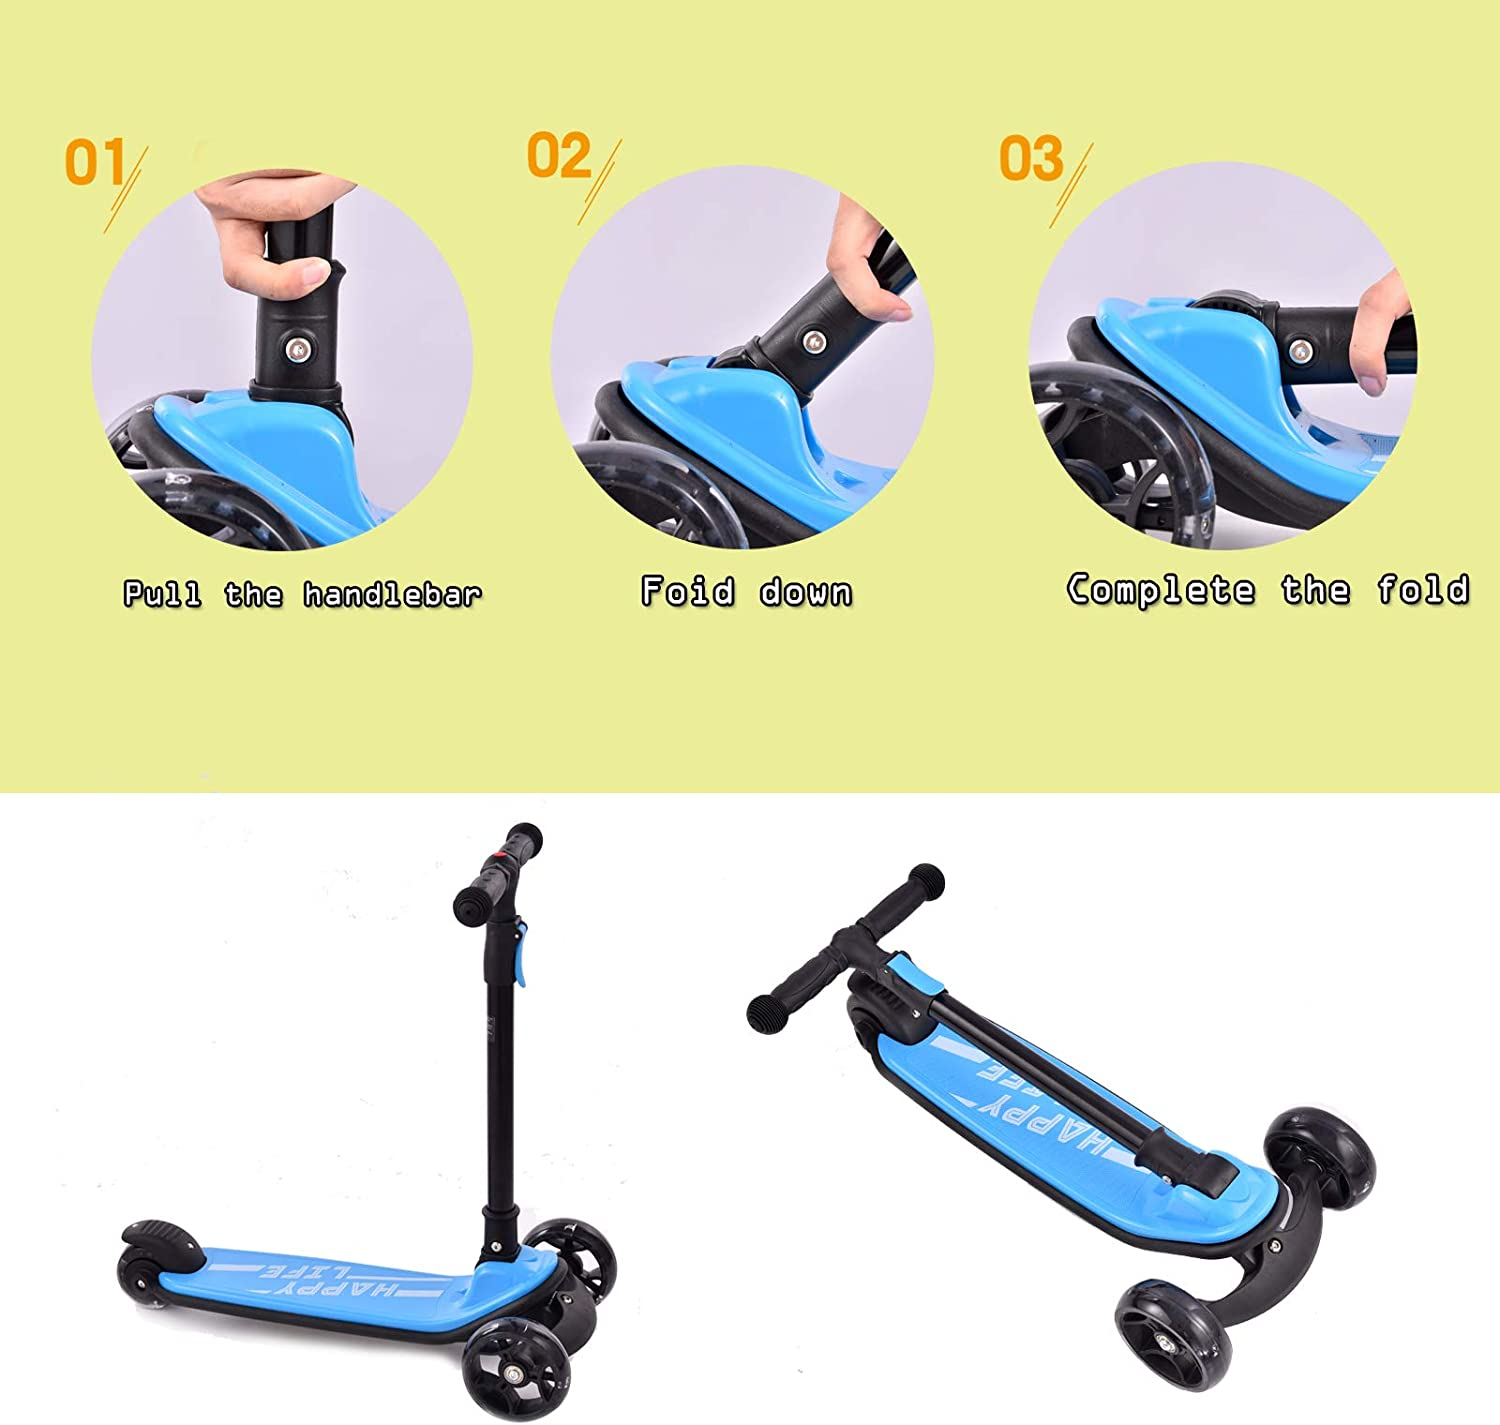 Unisex Height Adjustable Suitable for Children Aged 3-8 Foldable Bellanny Childrens Scooter with LED Wheels Three-Wheeled Scooter